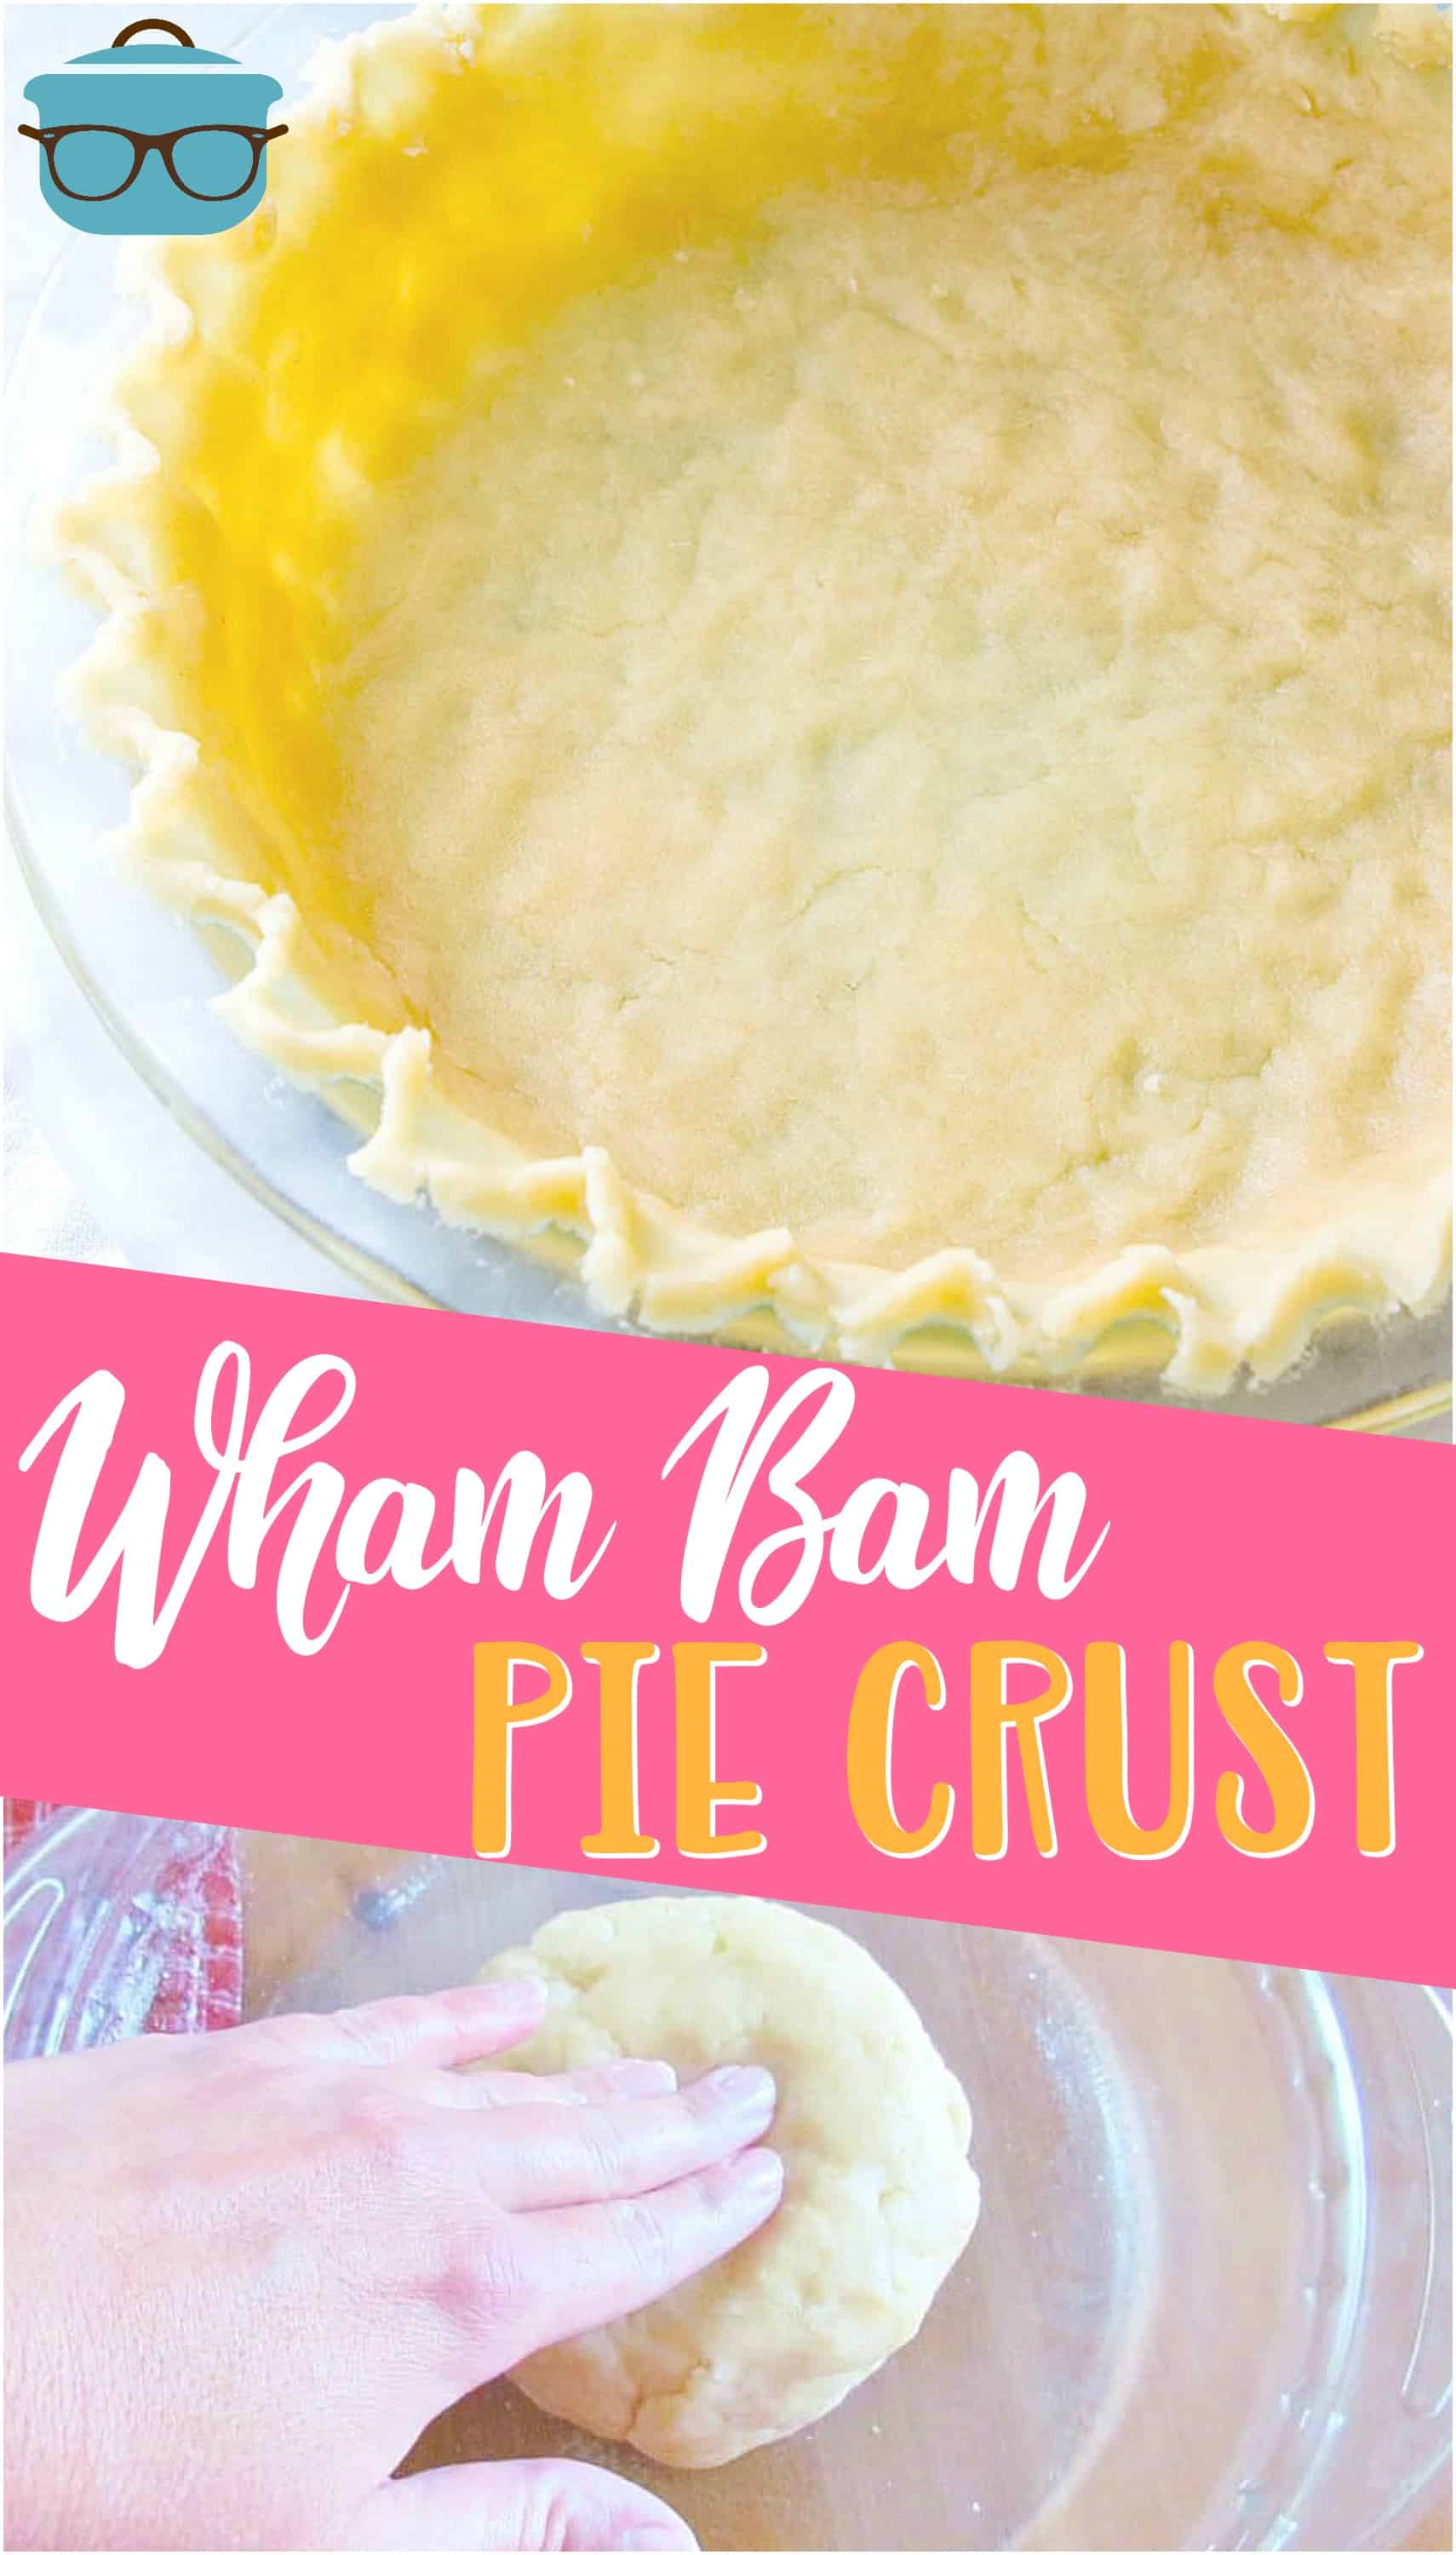 Wham Bam Pie Crust is the easiest pie crust ever! No rolling pins, no cold butter and no fuss but you still get a tender and flaky pie crust! #piecrust #desserts